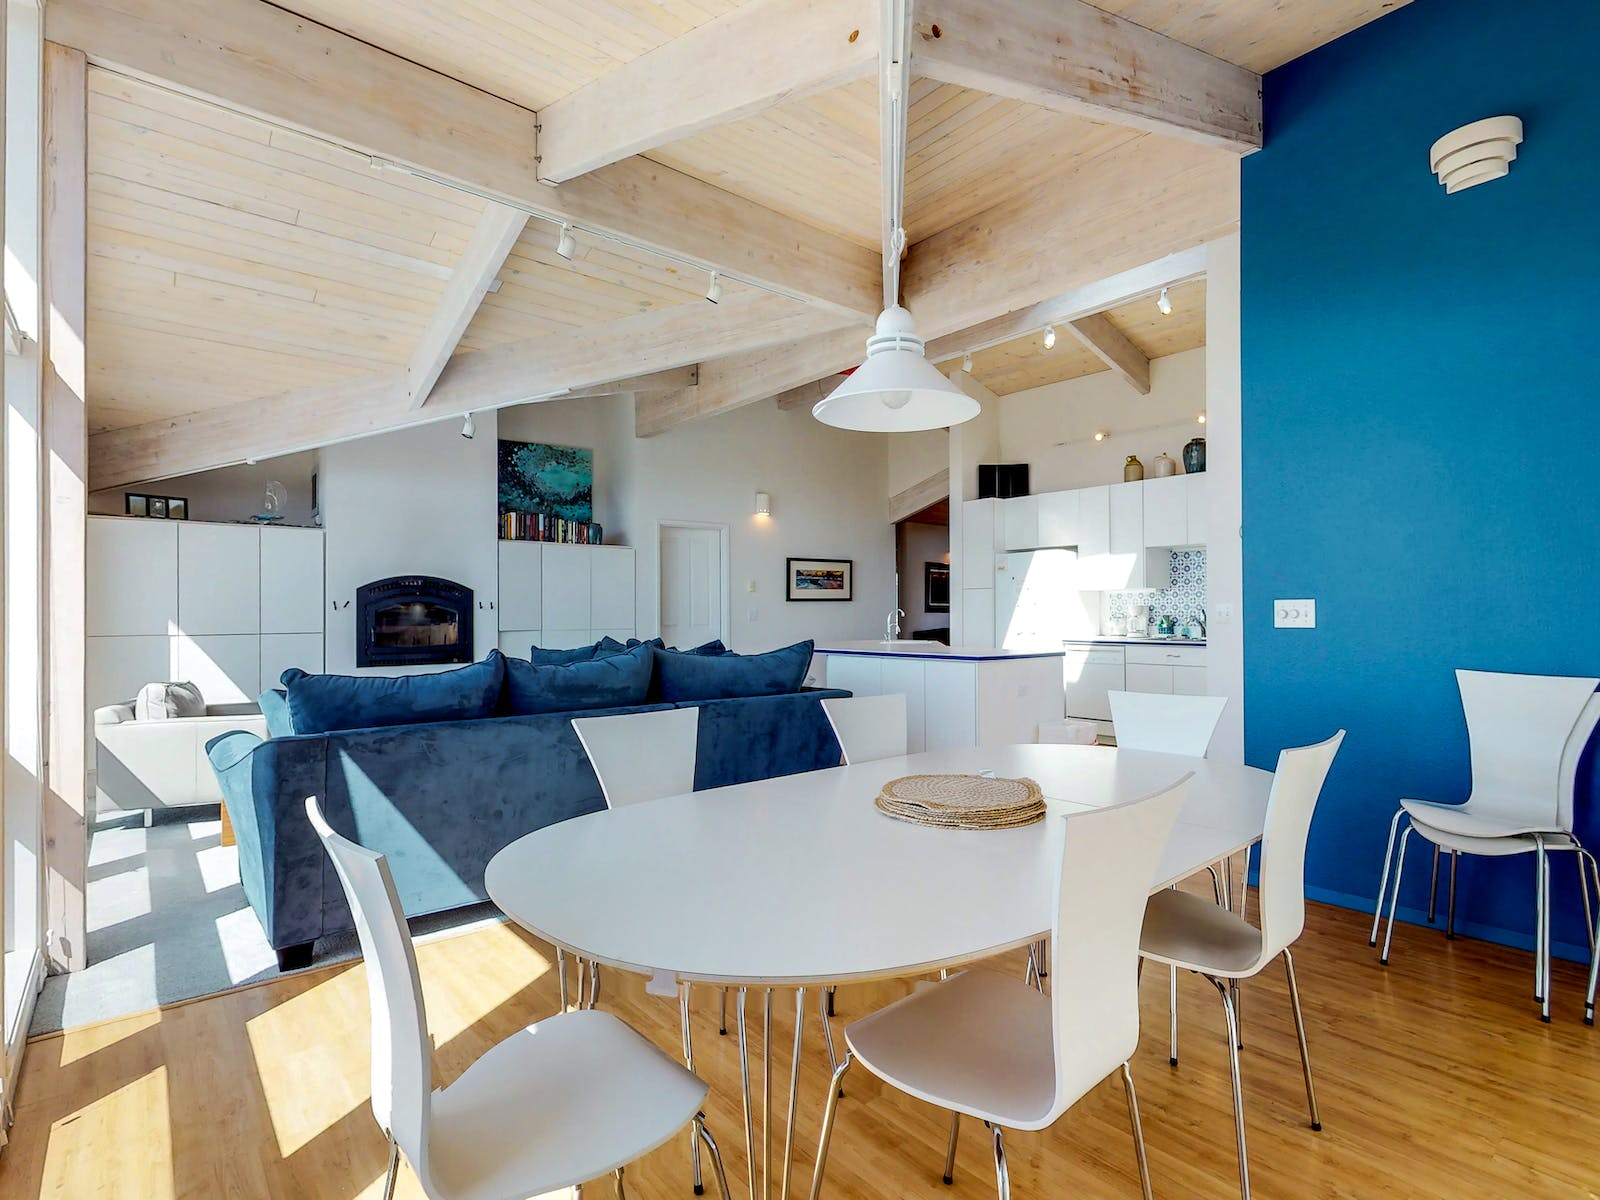 vacation rental in waldport, or with comfy blue couch and blue accent wall